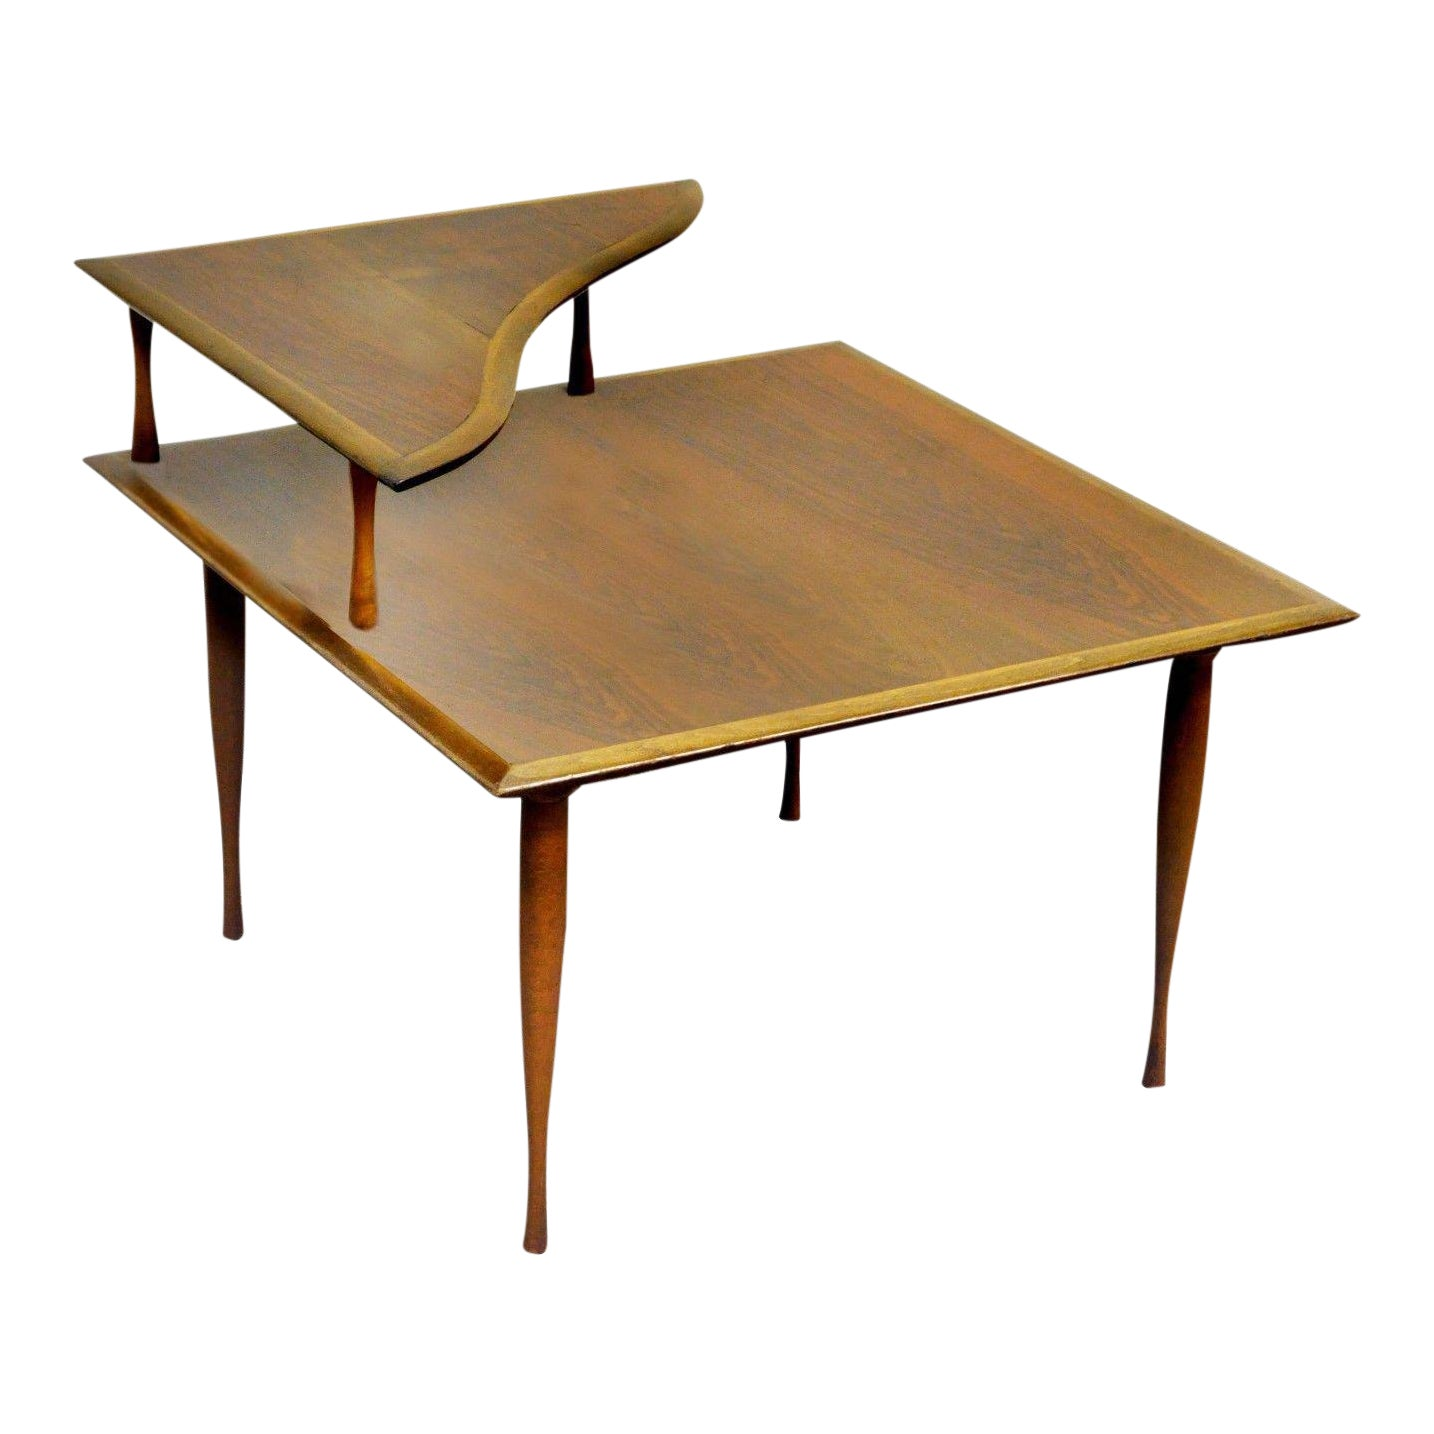 Vintage Mid Century Danish Modern Walnut 2 Tier Corner Coffee Table Hourglass Legs Chairish